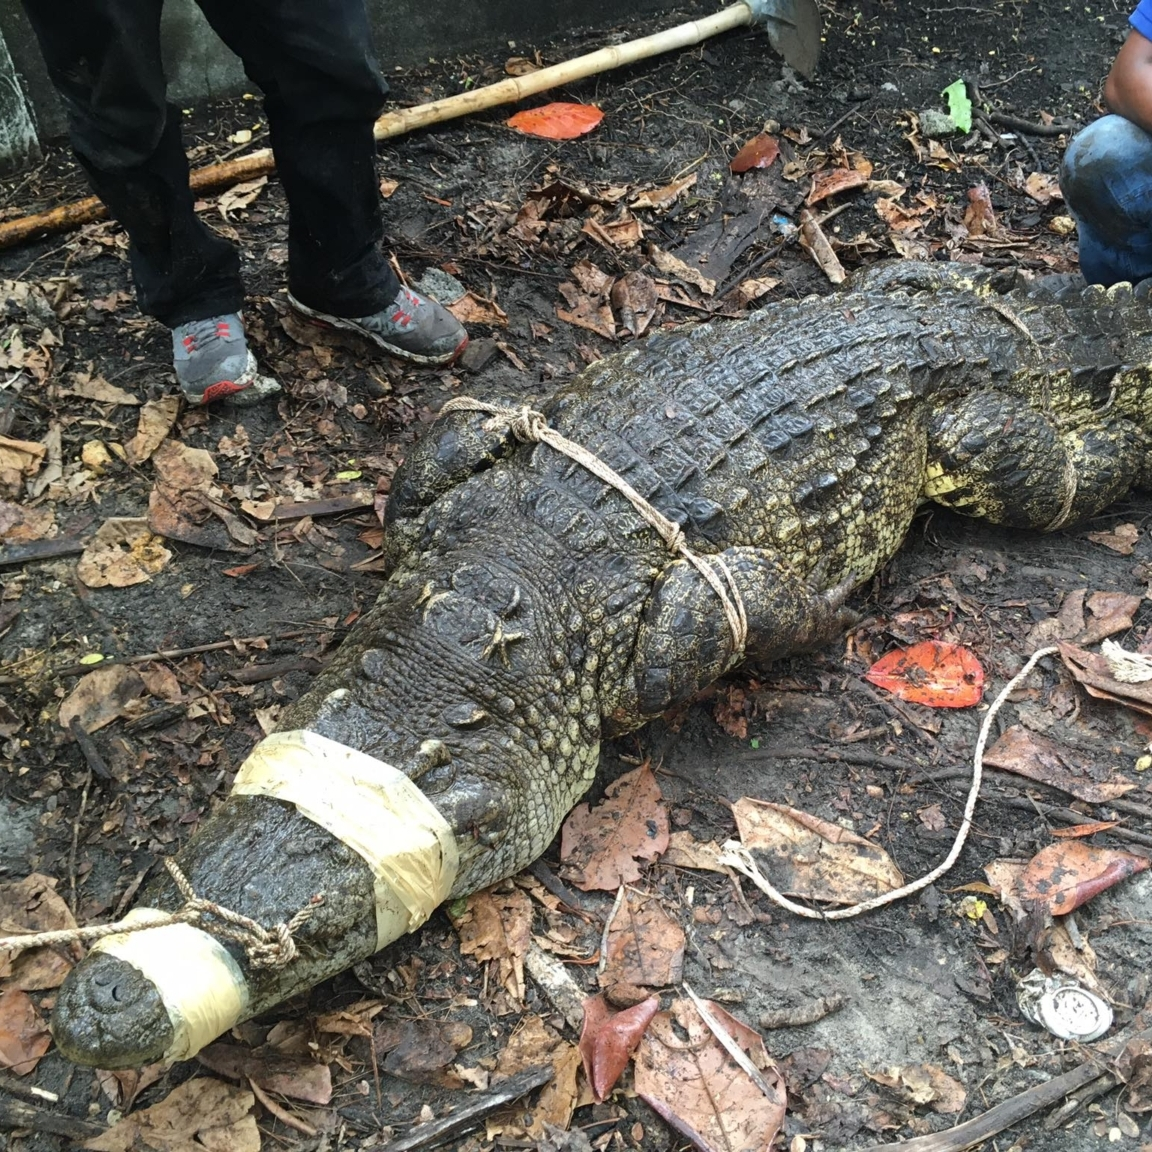 Crocodiles rescued in Koh Kong province